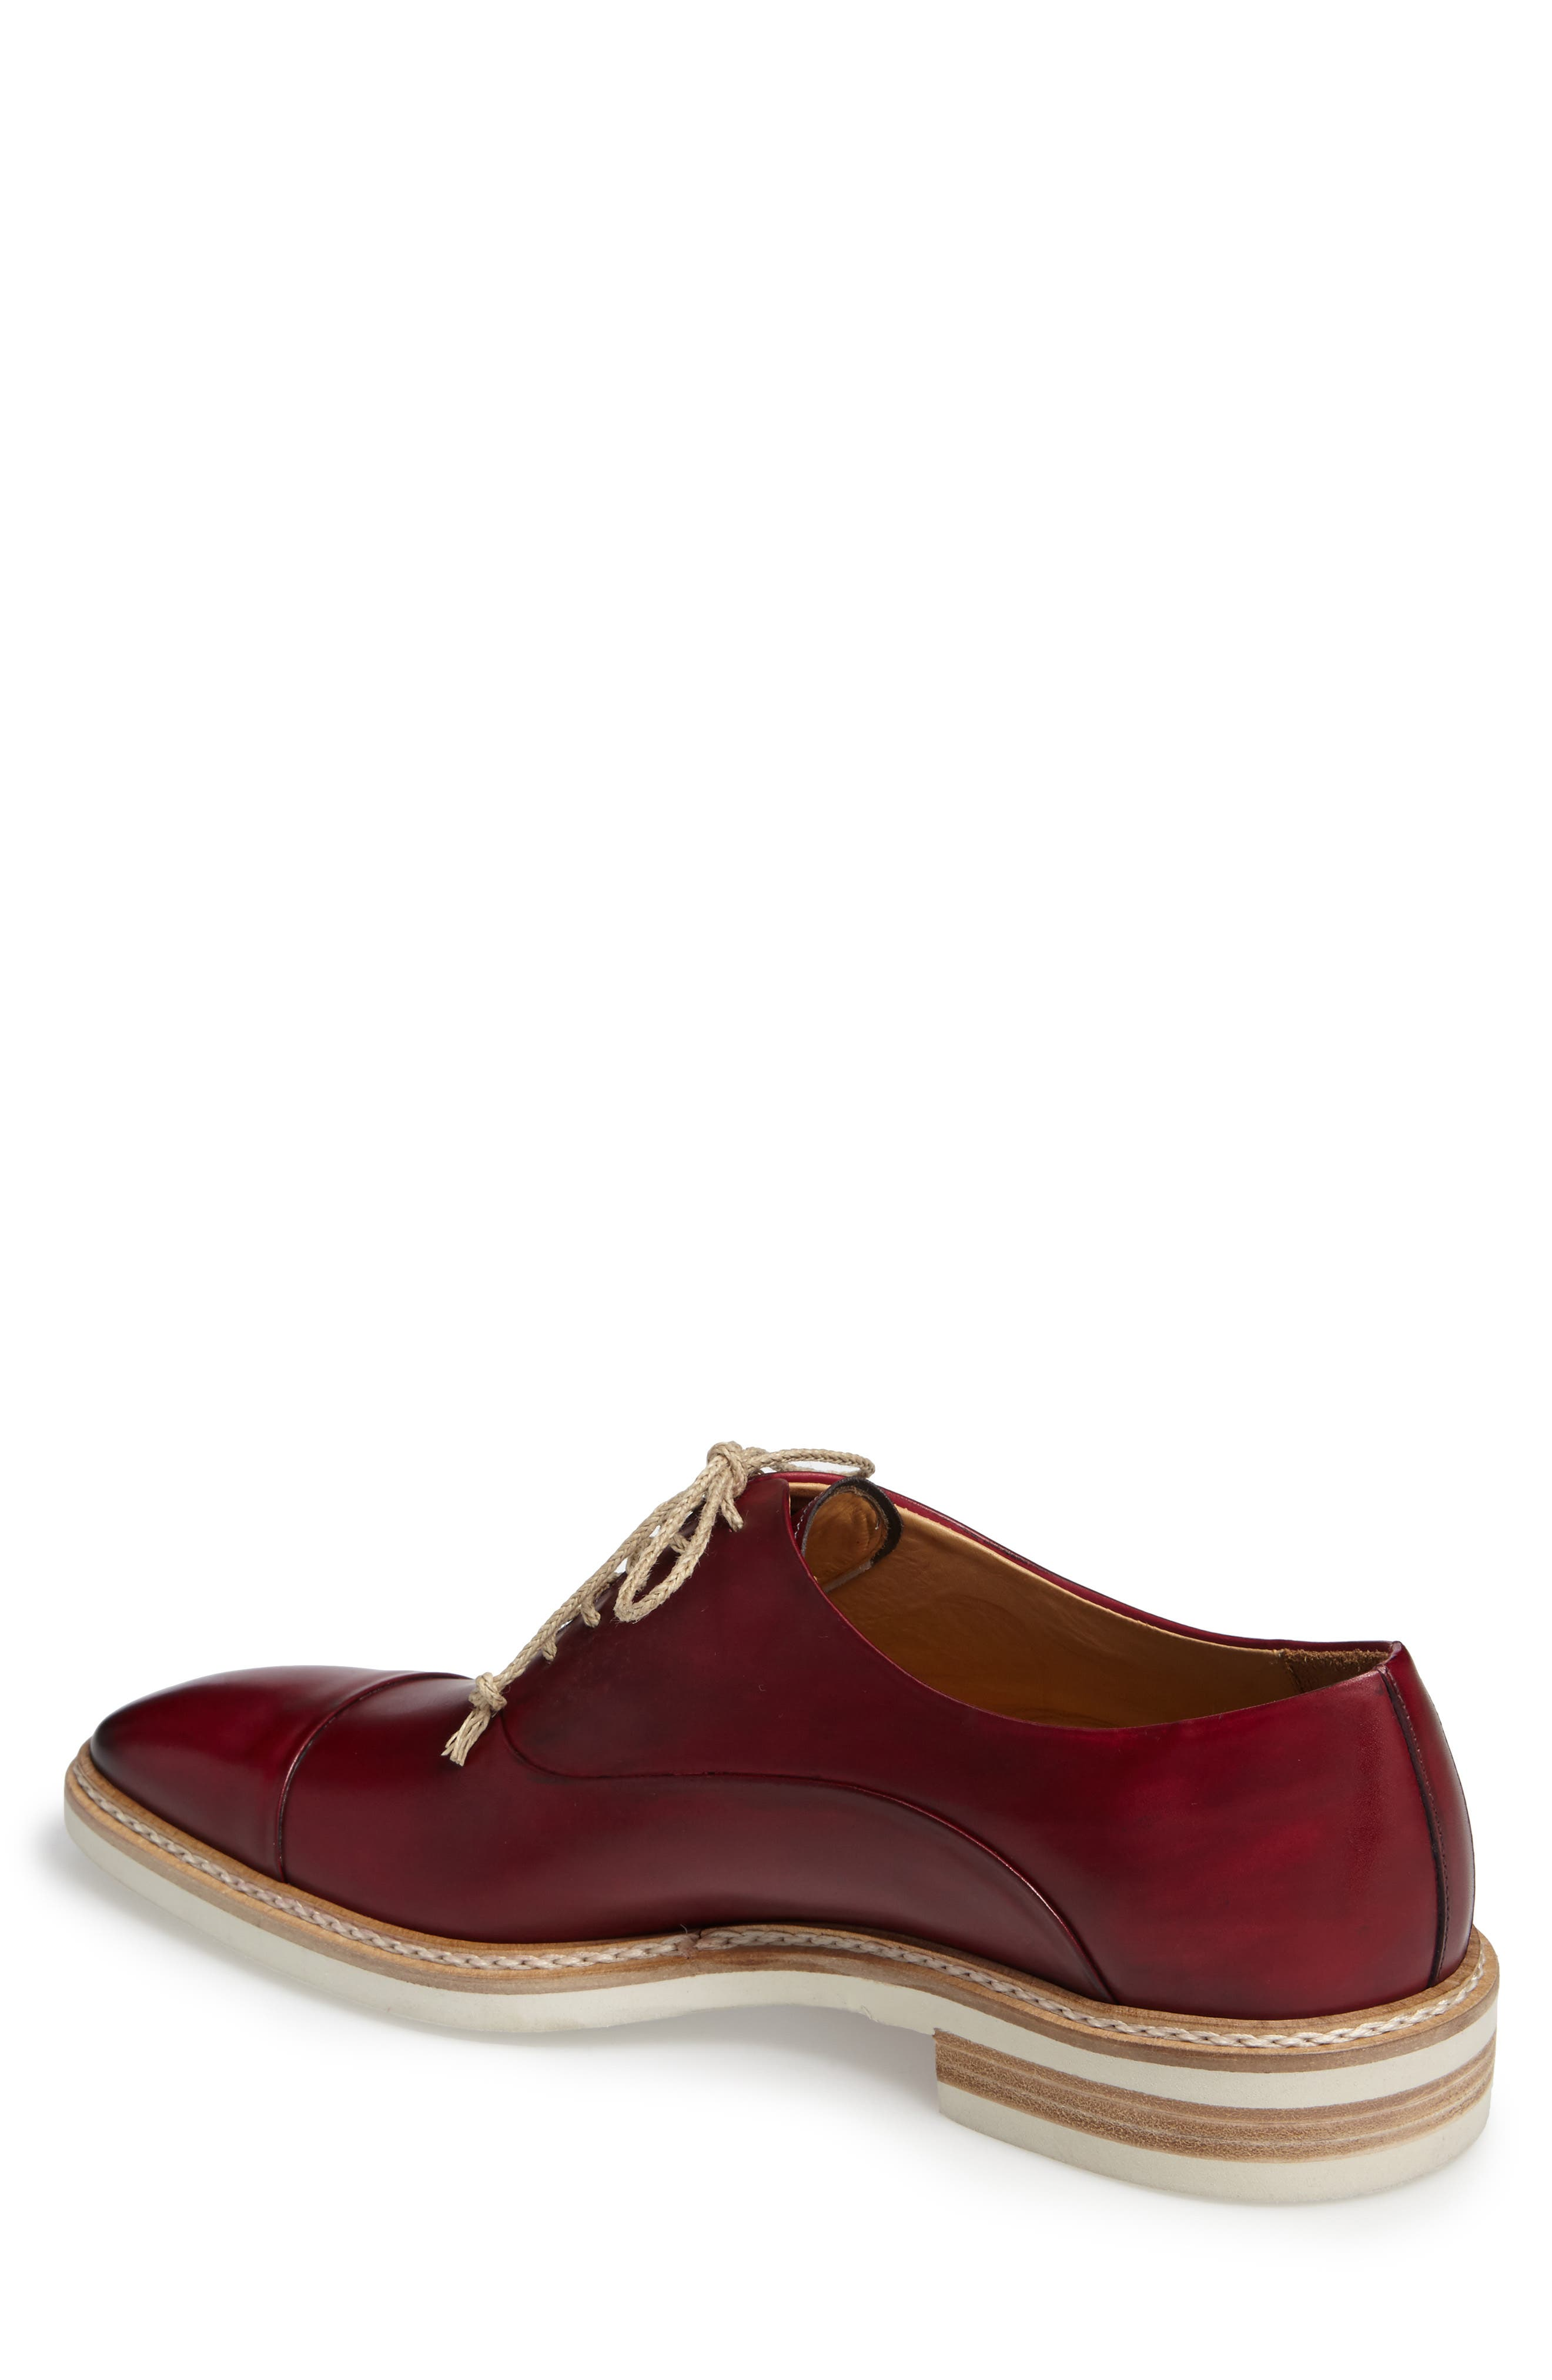 Curie Cap Toe Oxford,                             Alternate thumbnail 2, color,                             Burgundy Leather